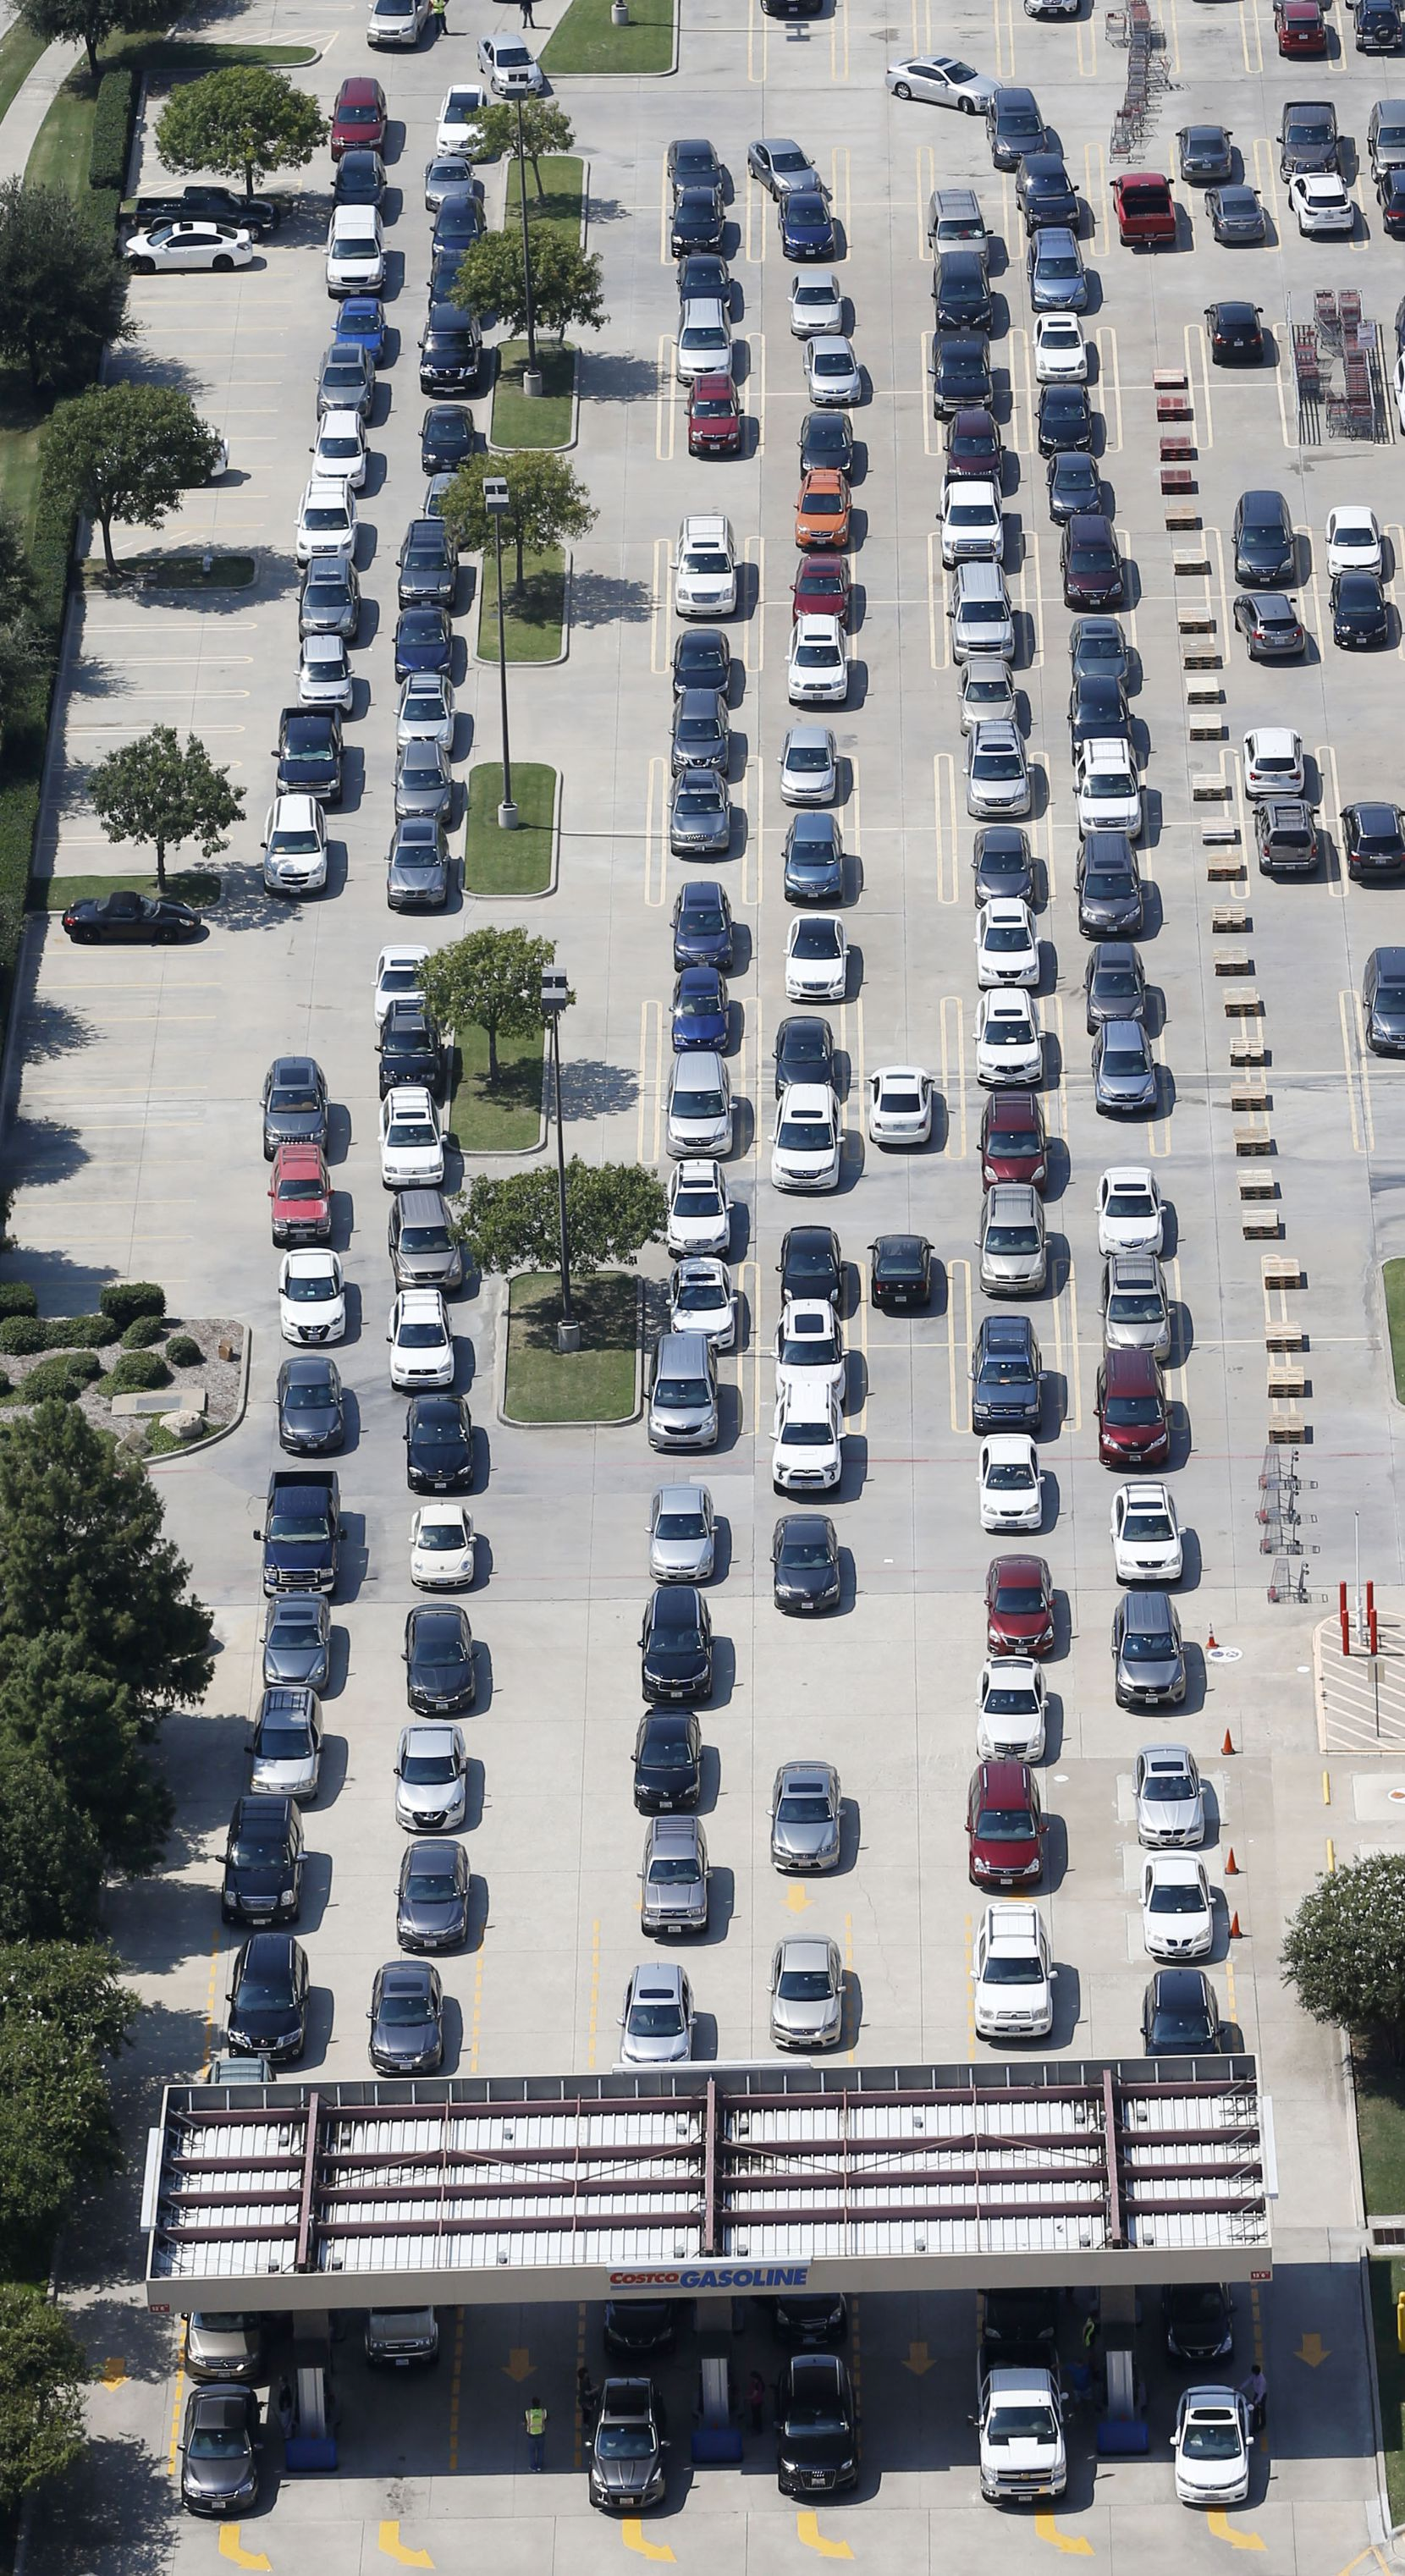 People wait in line to get gas at the Costco at Sam Rayburn Tollway and I-35 in Lewisville, TX on Thursday, August 31, 2017.